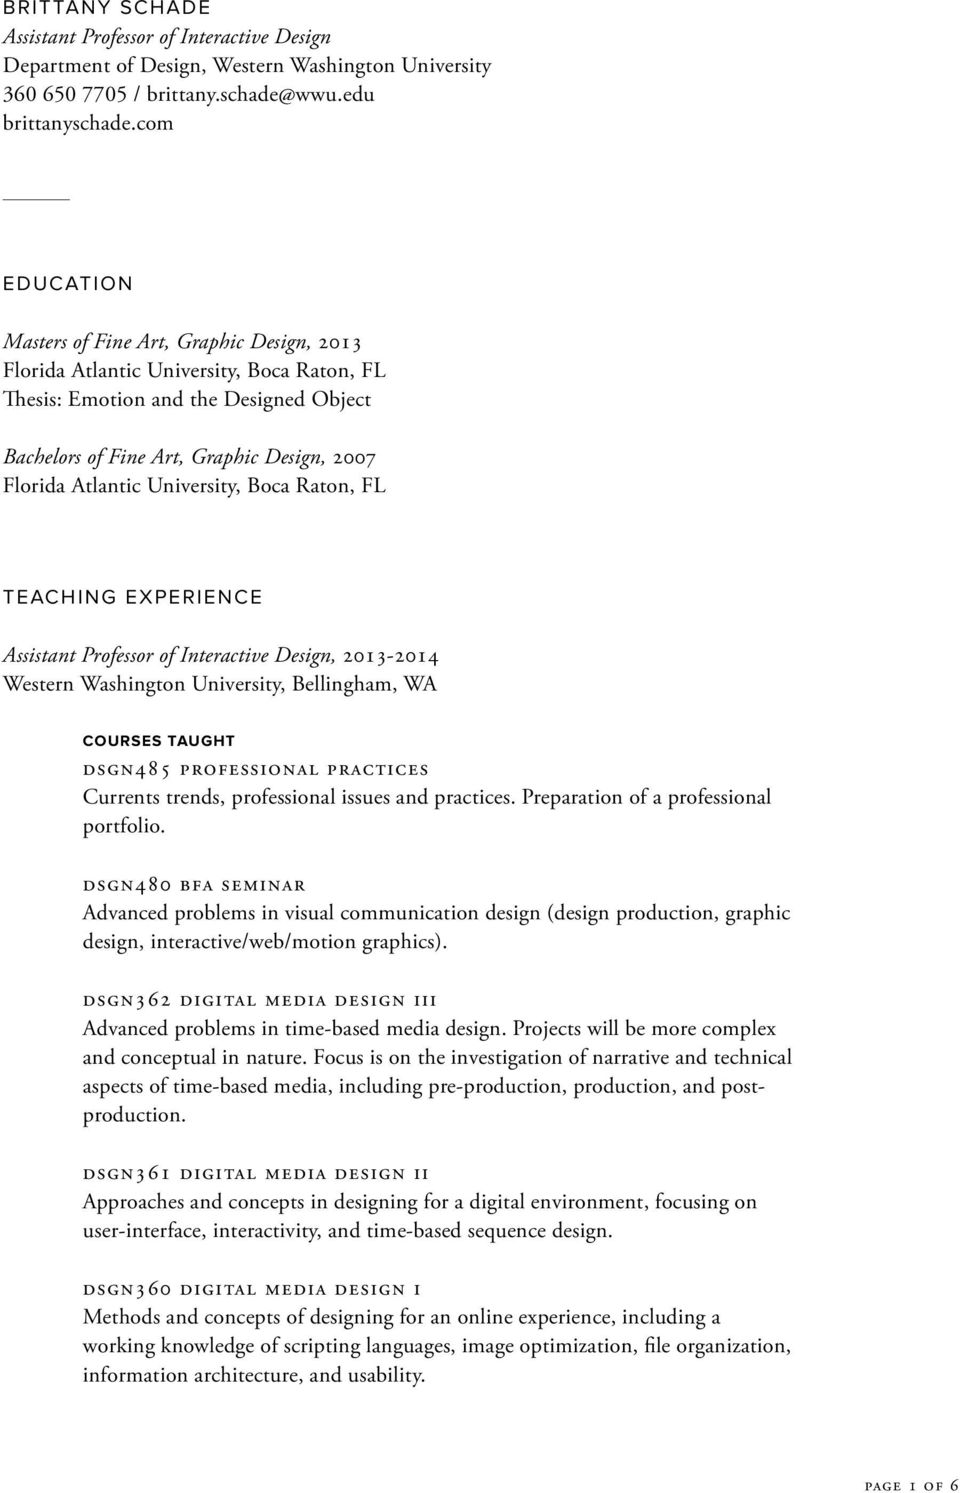 Atlantic University, Boca Raton, FL TEACHING EXPERIENCE Assistant Professor of Interactive Design, 2013-2014 Western Washington University, Bellingham, WA COURSES TAUGHT dsgn485 professional